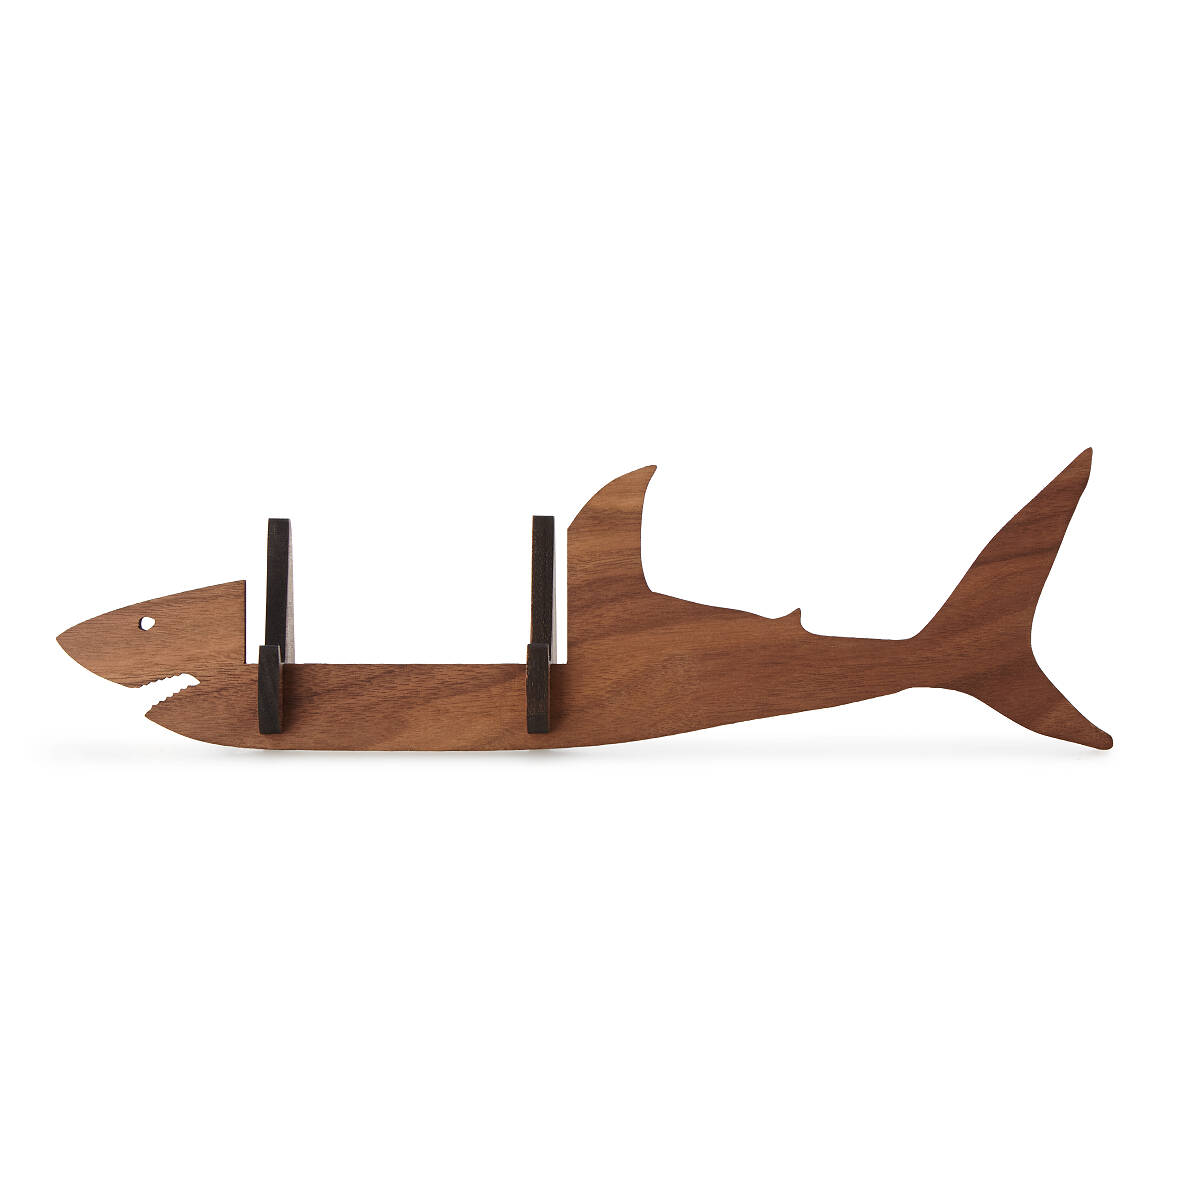 Shark Business Card Holder | Desk Accessories, Walnut Wood ...